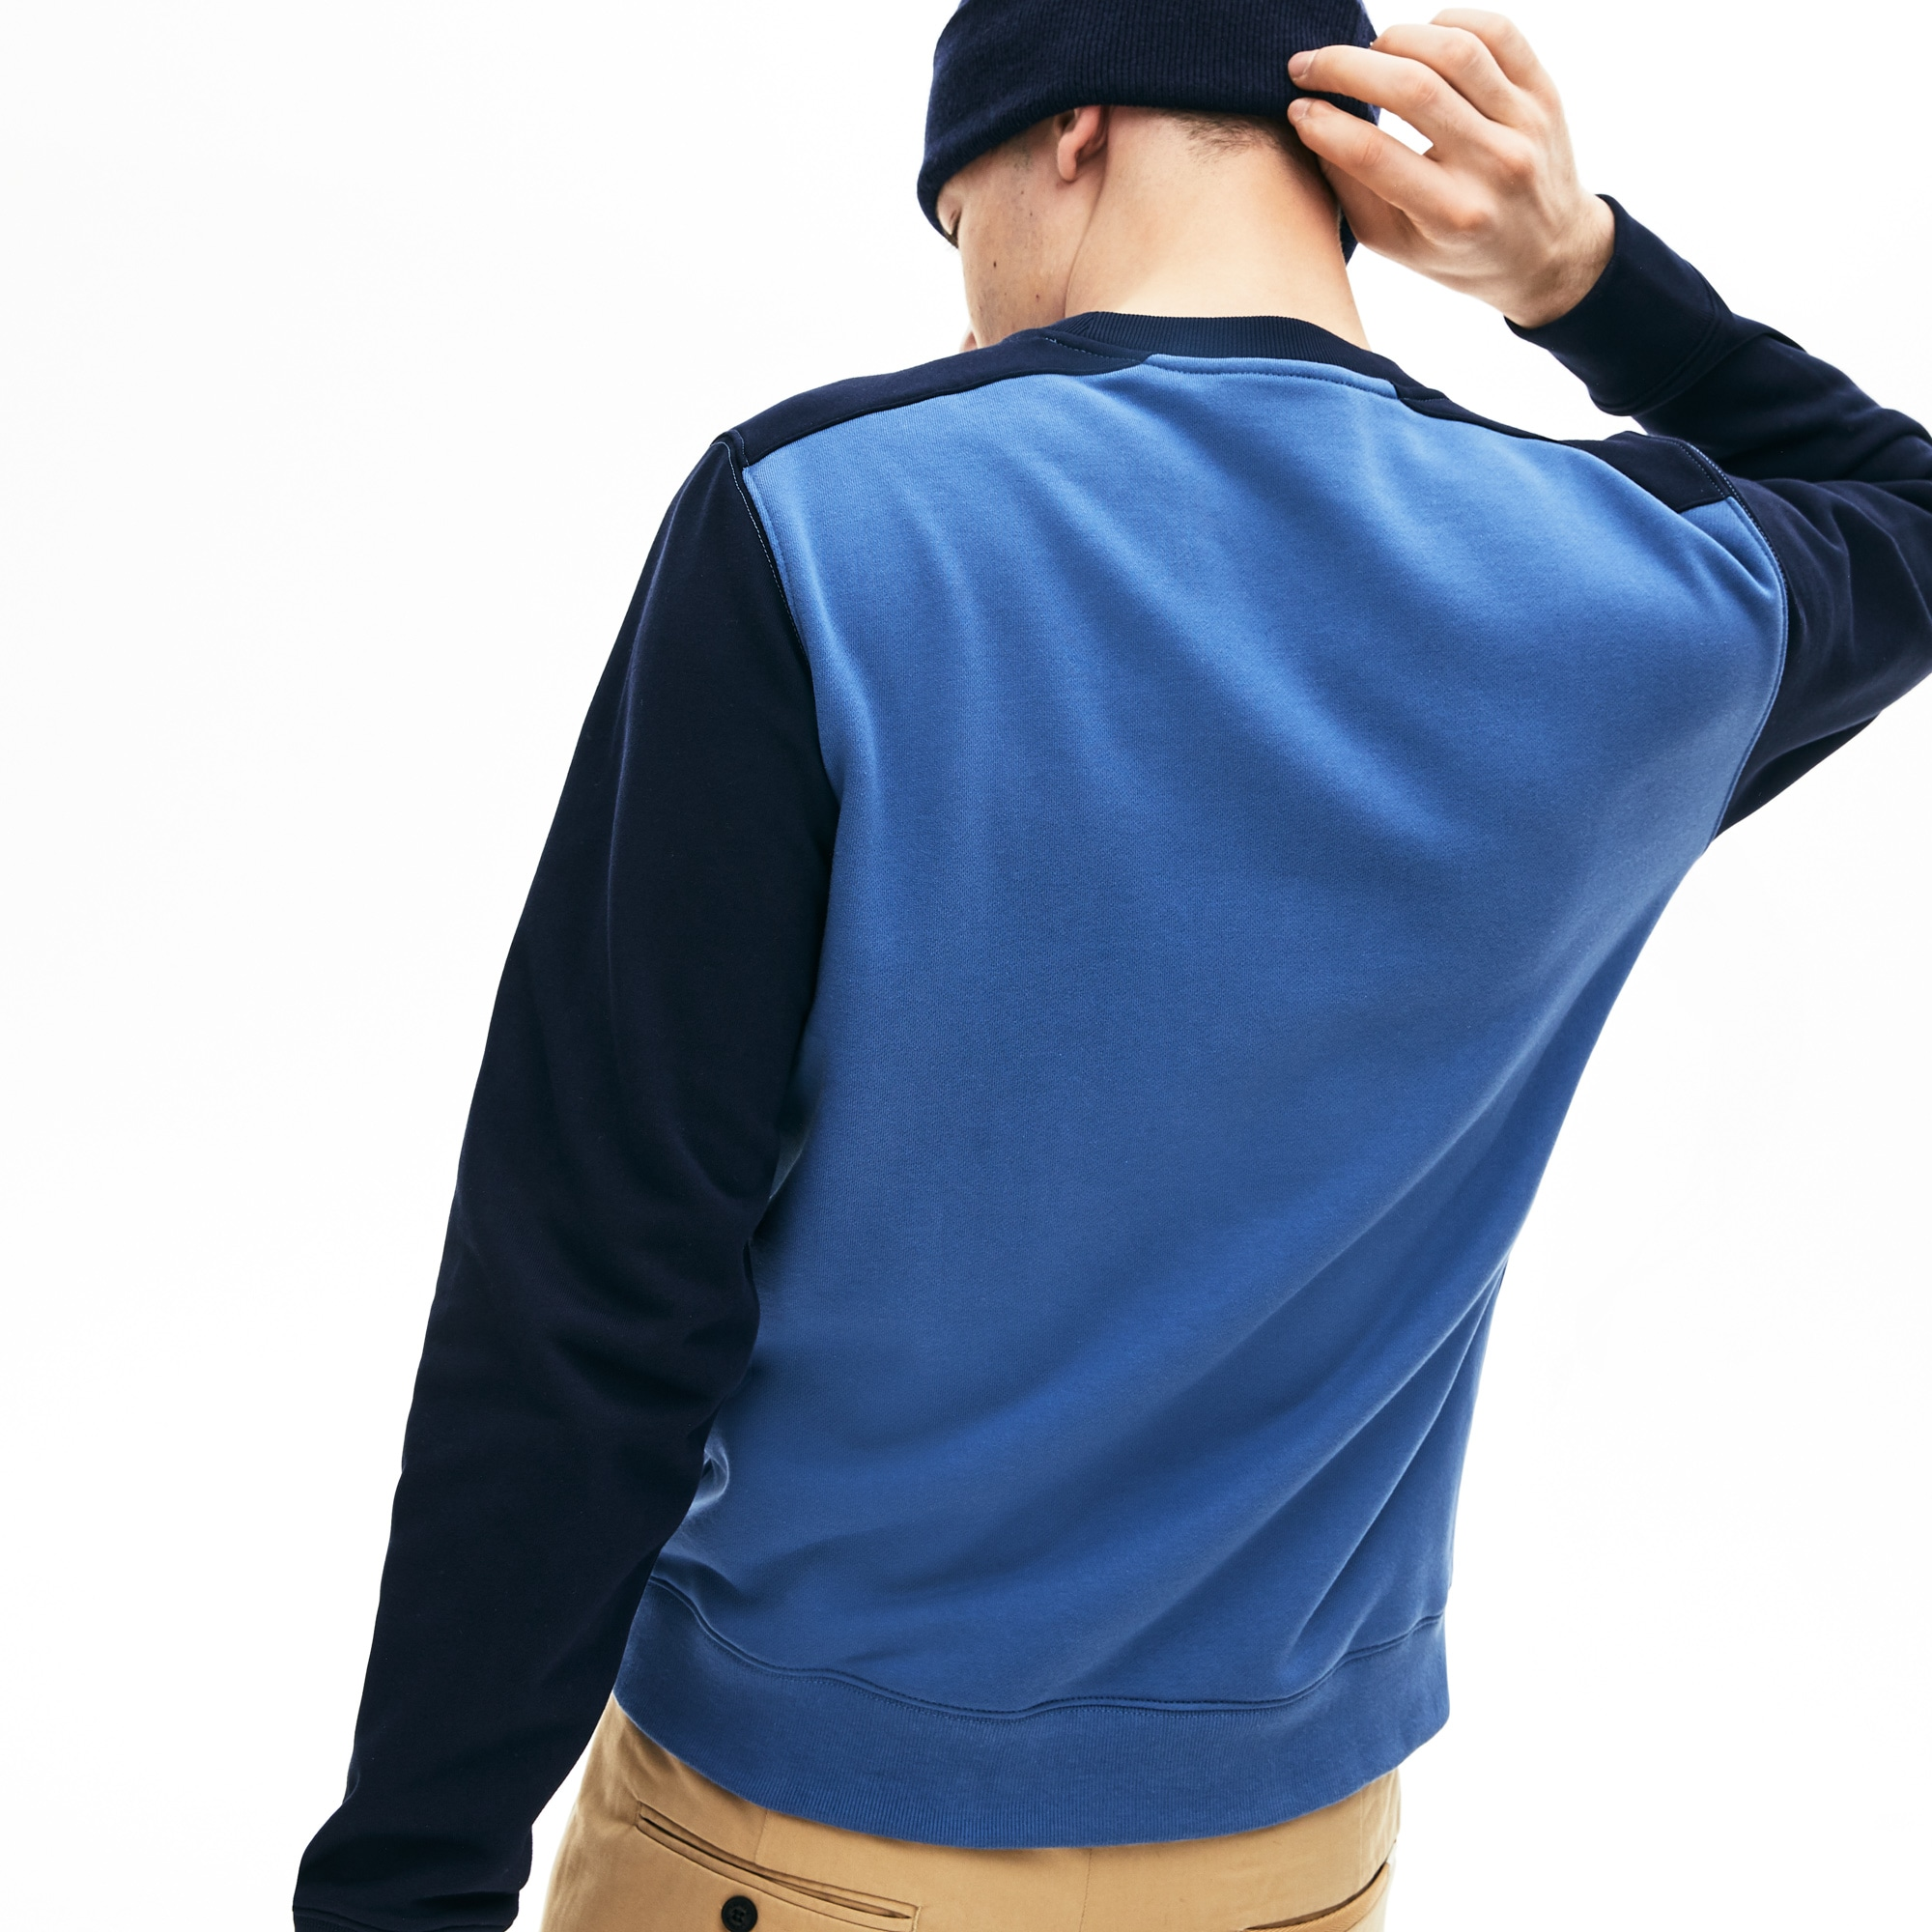 Herren Baumwollfleece-Sweatshirt mit Colourblocks